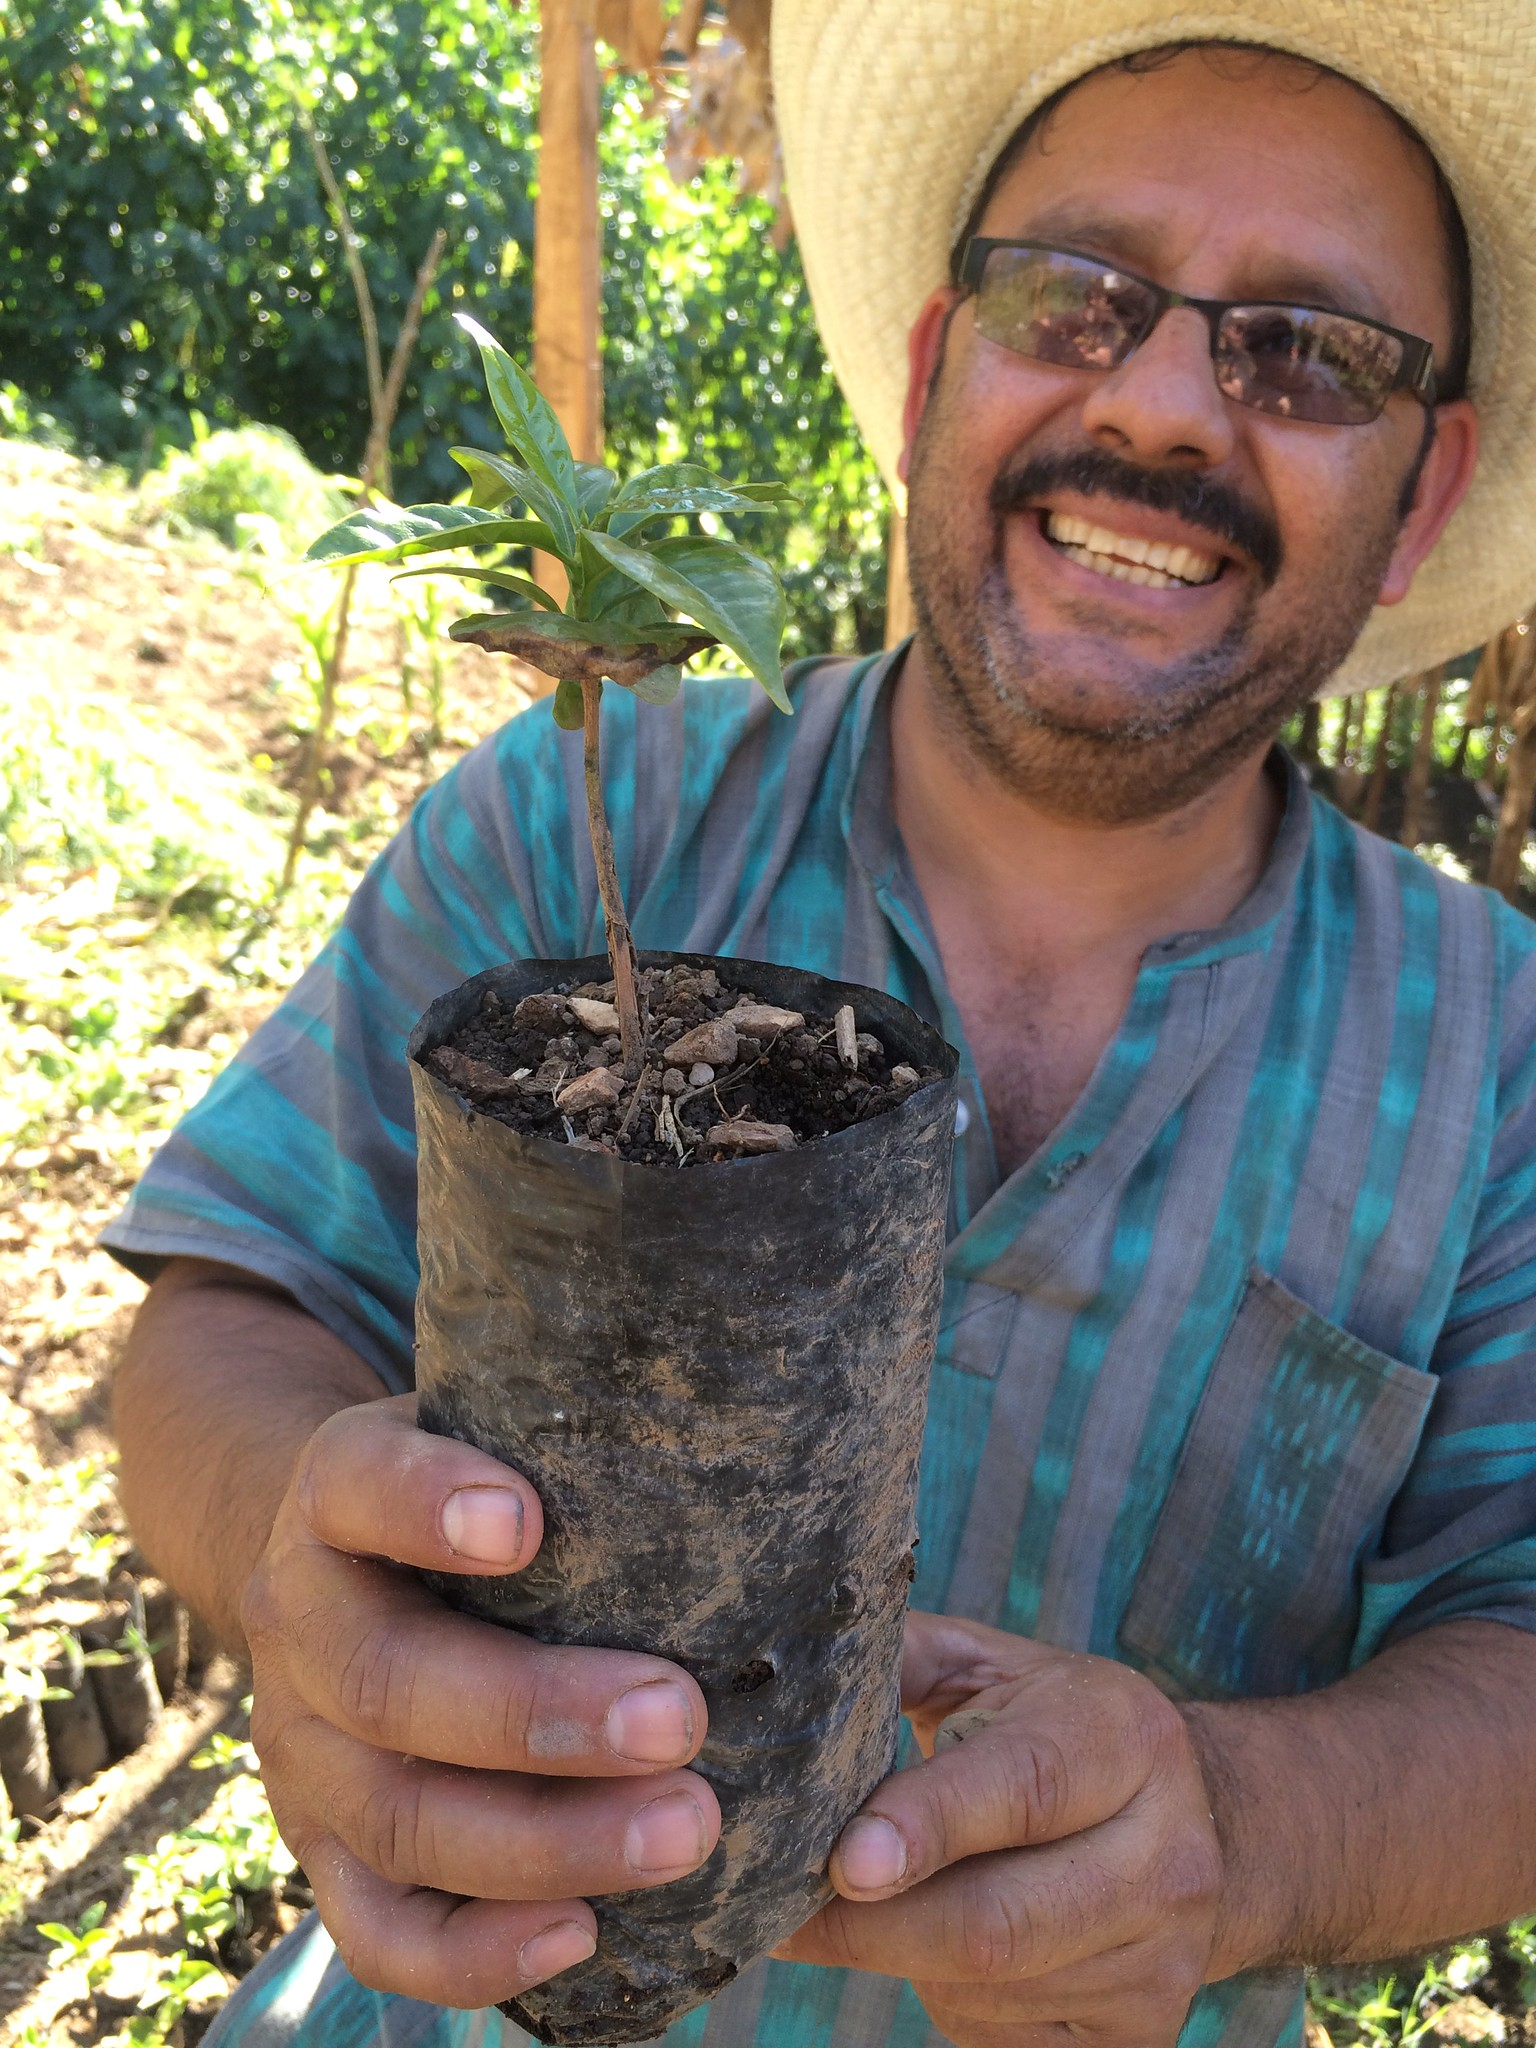 Rolando showing how they craft a top of Gesha on roots of Catimor, to try and make good tasting rust resistant plants